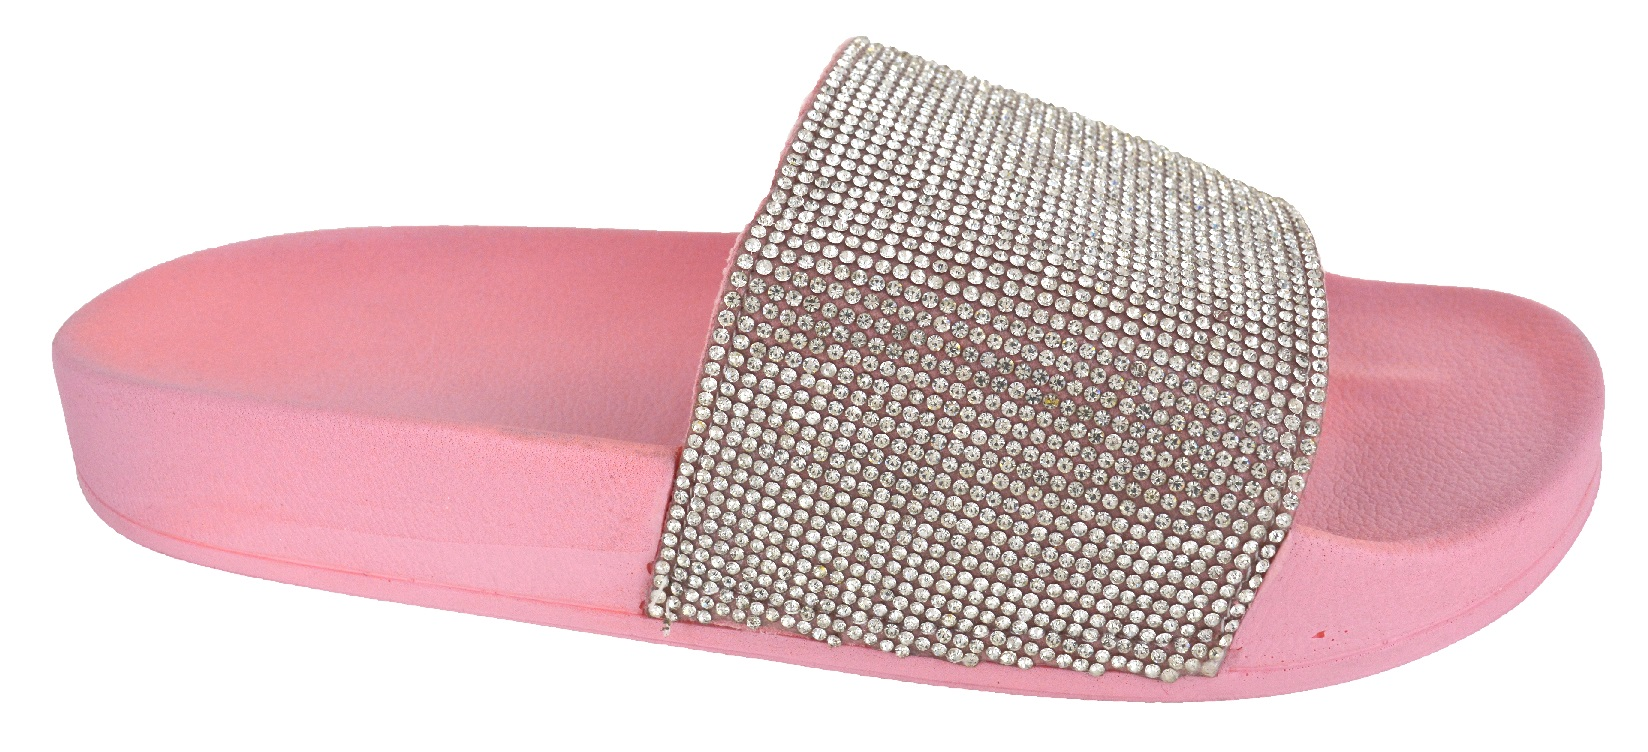 LADIES-WOMENS-SLIP-ON-DIAMANTE-BLING-SLIDERS-SLIPPER-SPARKLY-SANDALS-SHOES-SIZE thumbnail 5